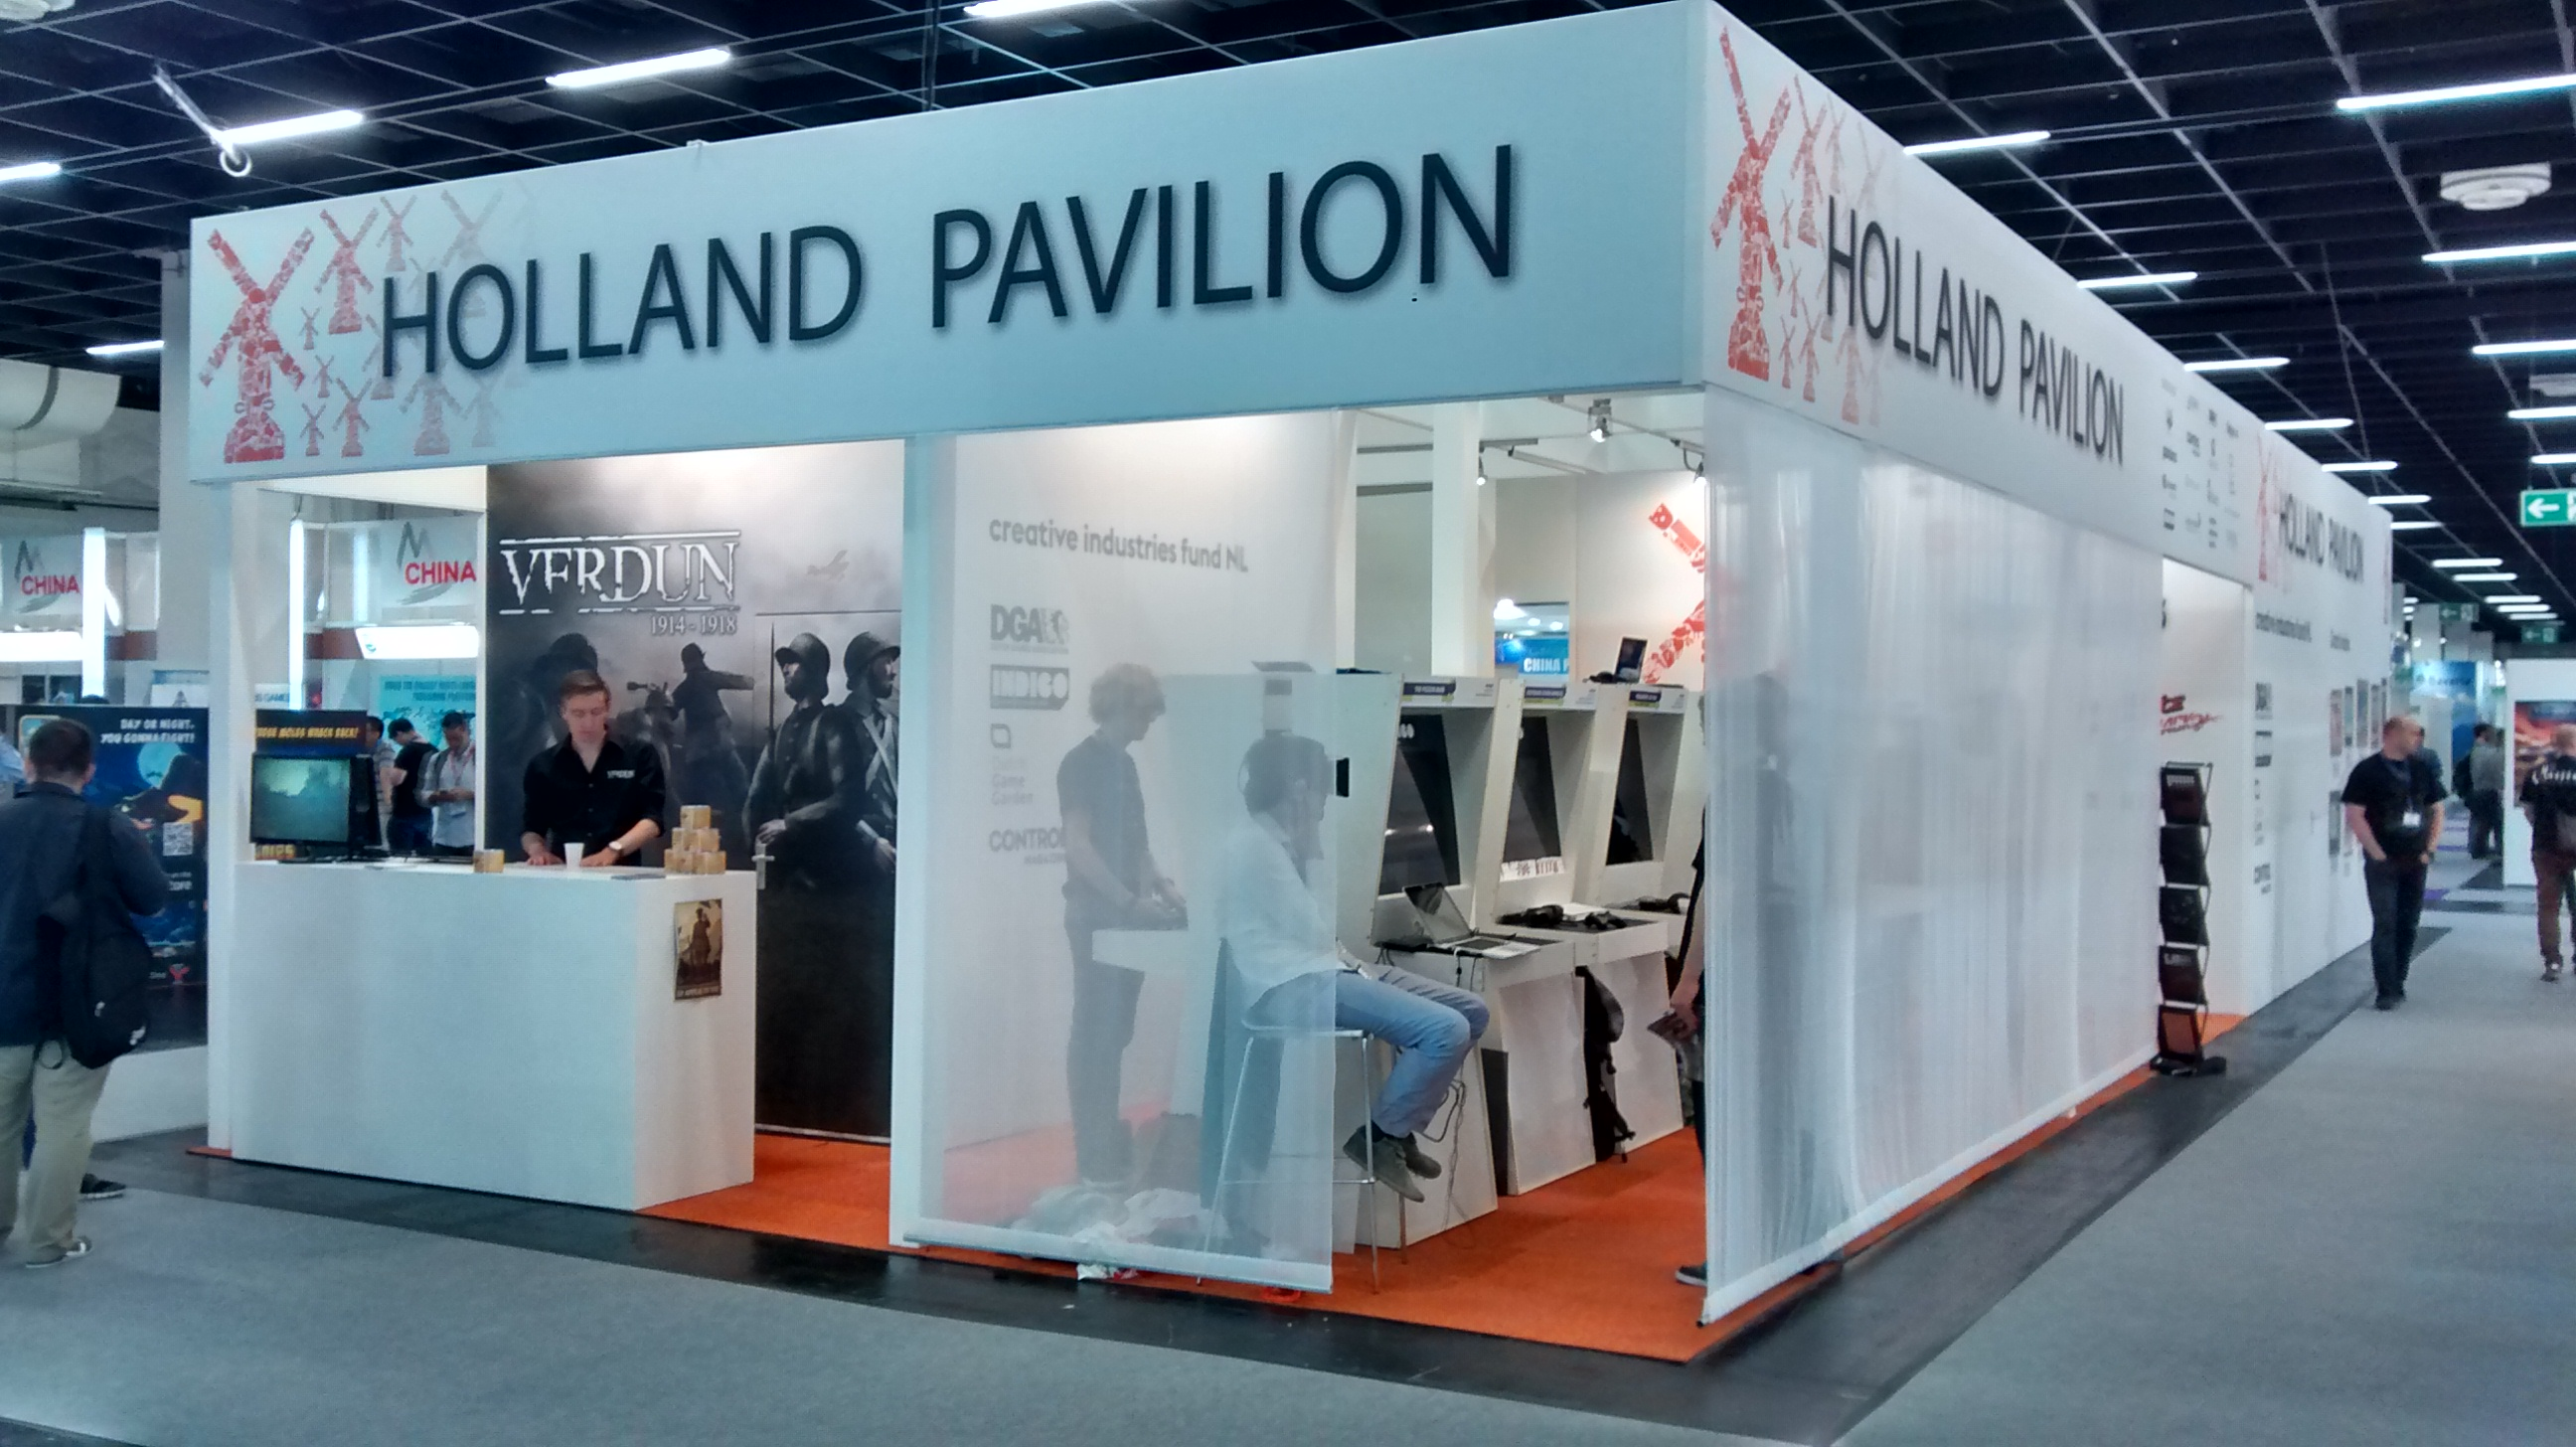 Holland Pavilion